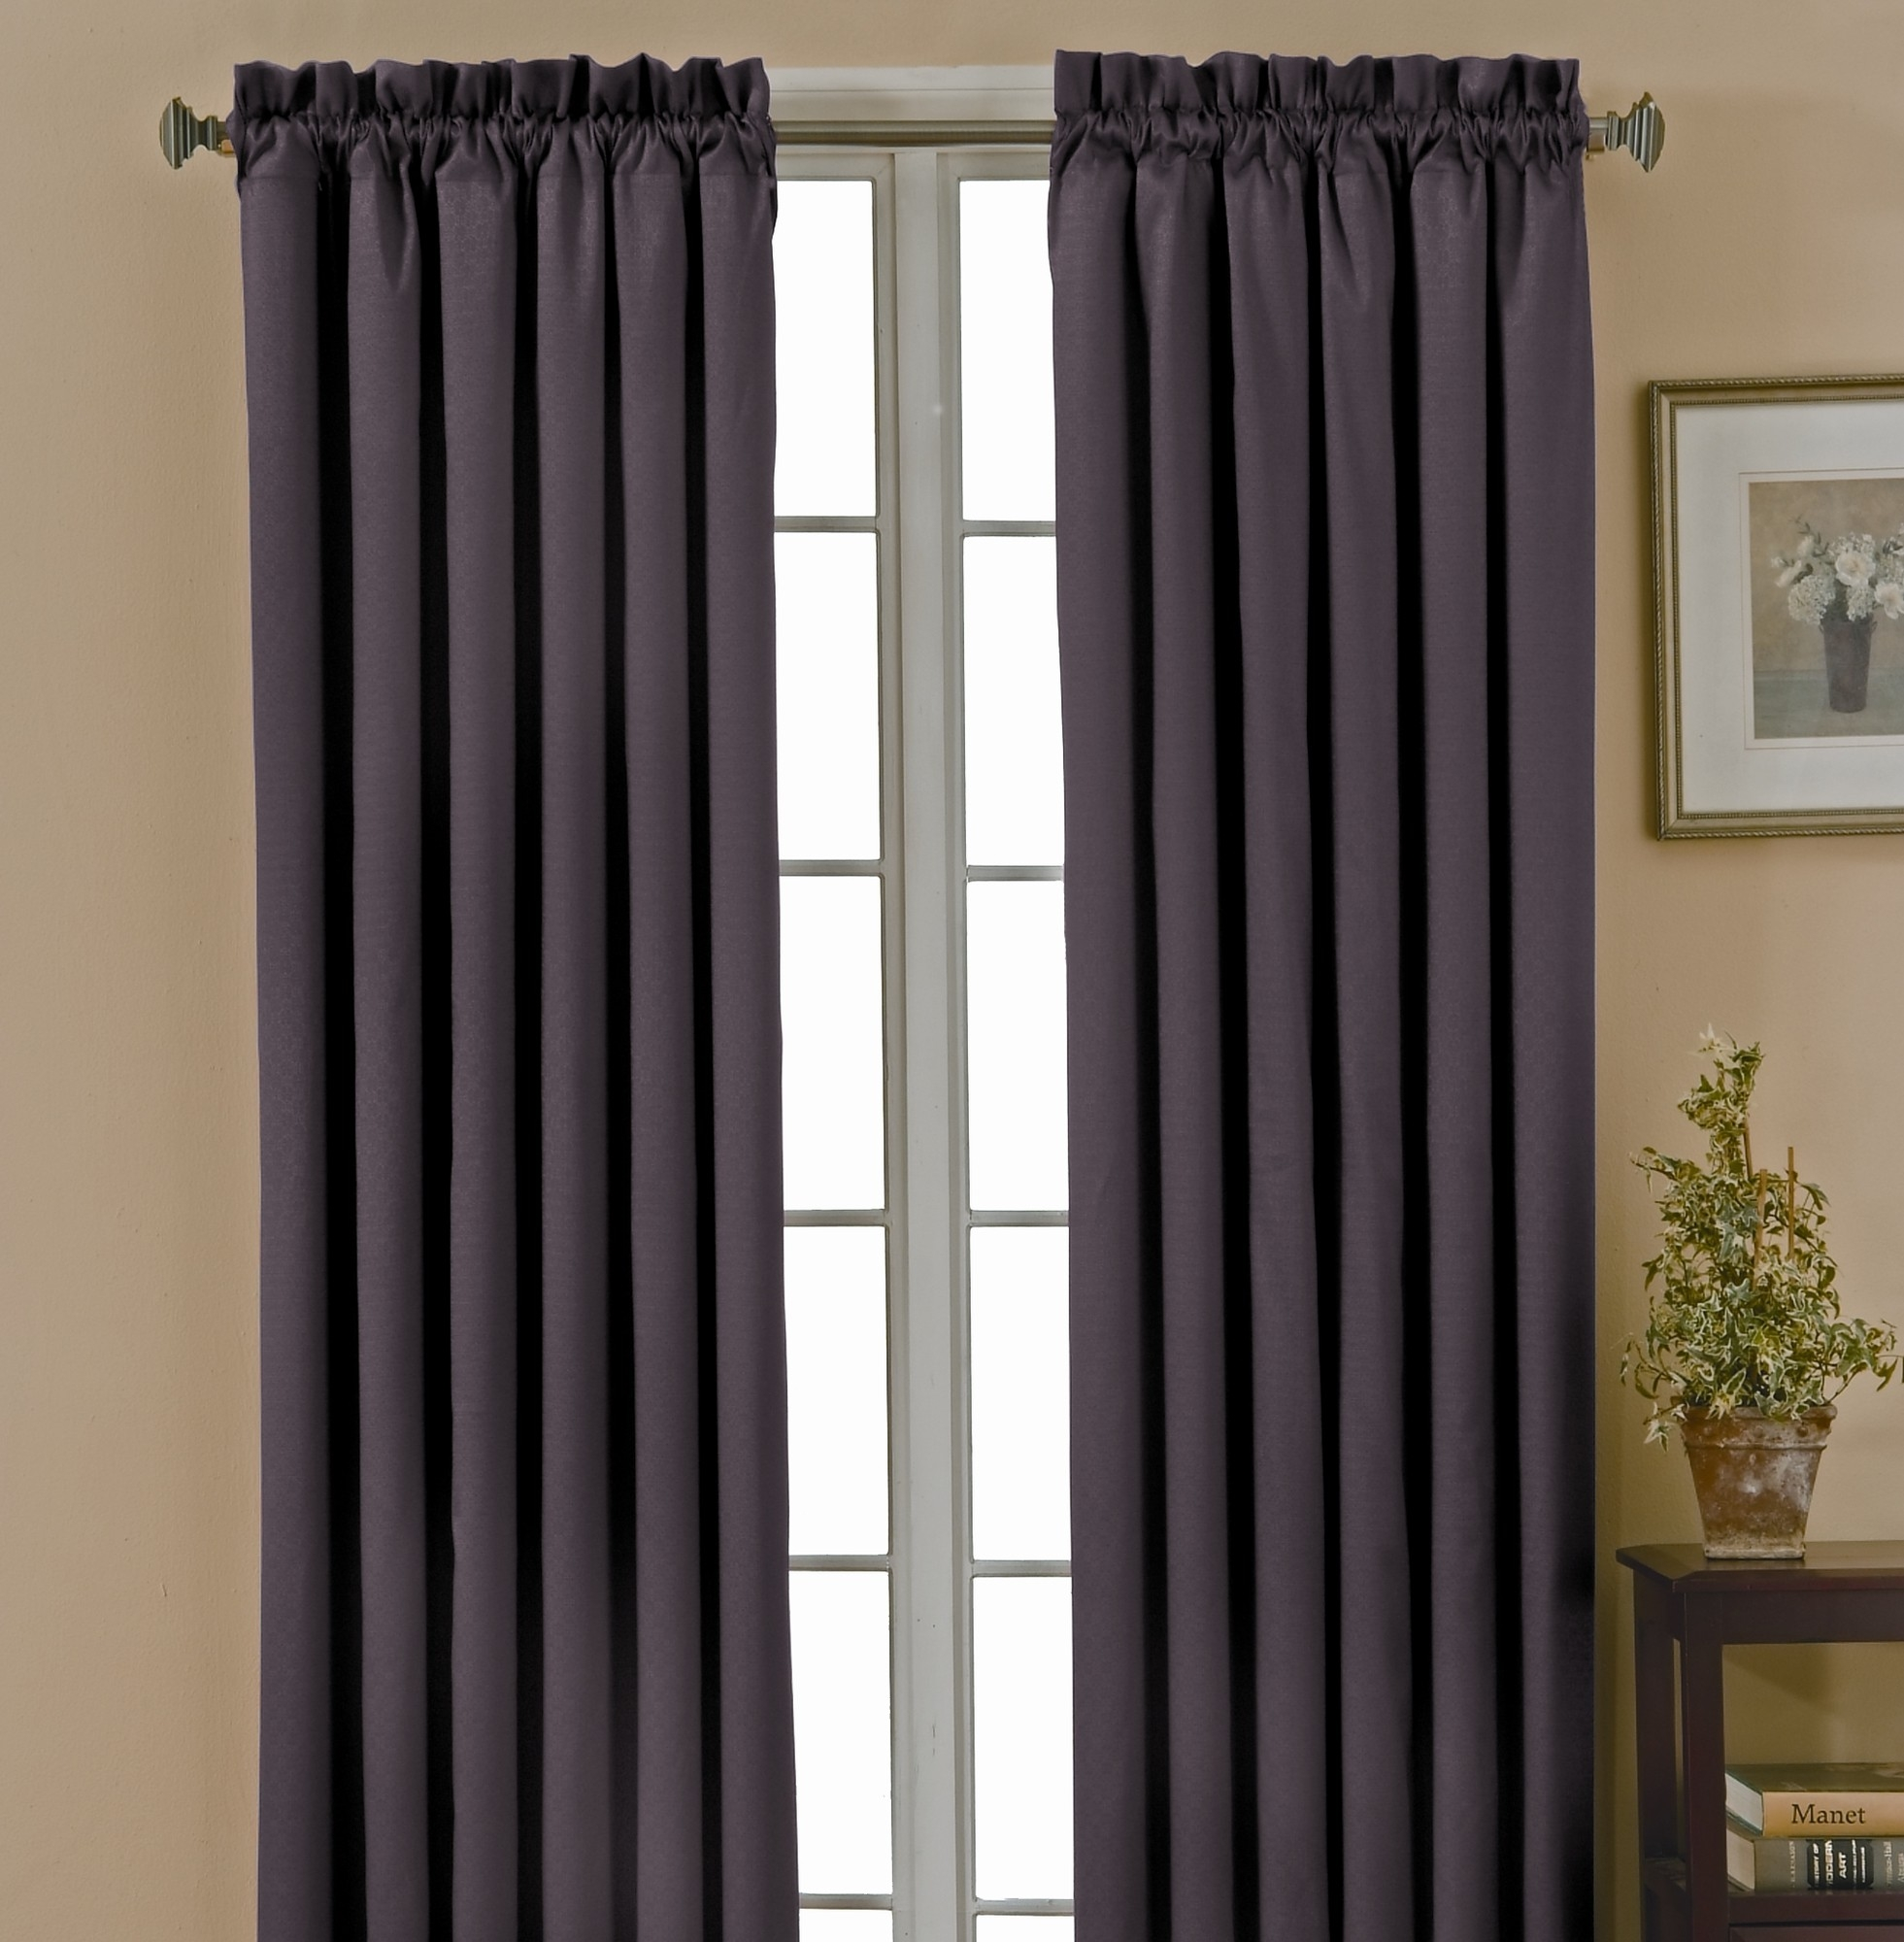 Blackout Curtain Also With A Thermal Blackout Curtains Also With A In Thick Grey Curtains (Image 3 of 15)